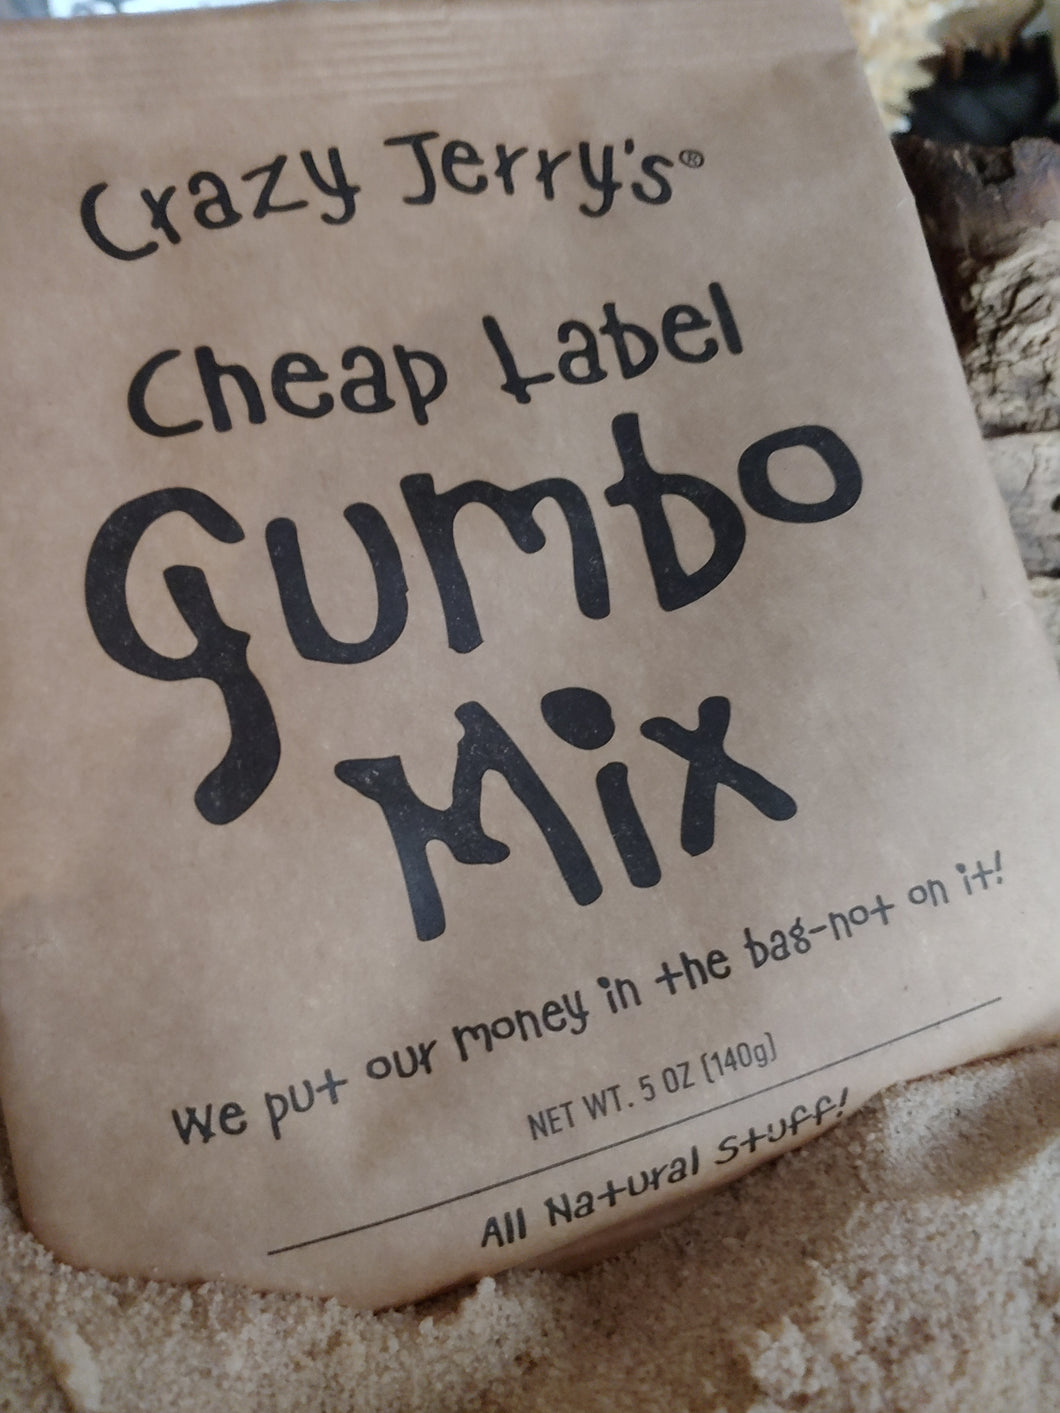 CHEAP LABEL GUMBO MIX